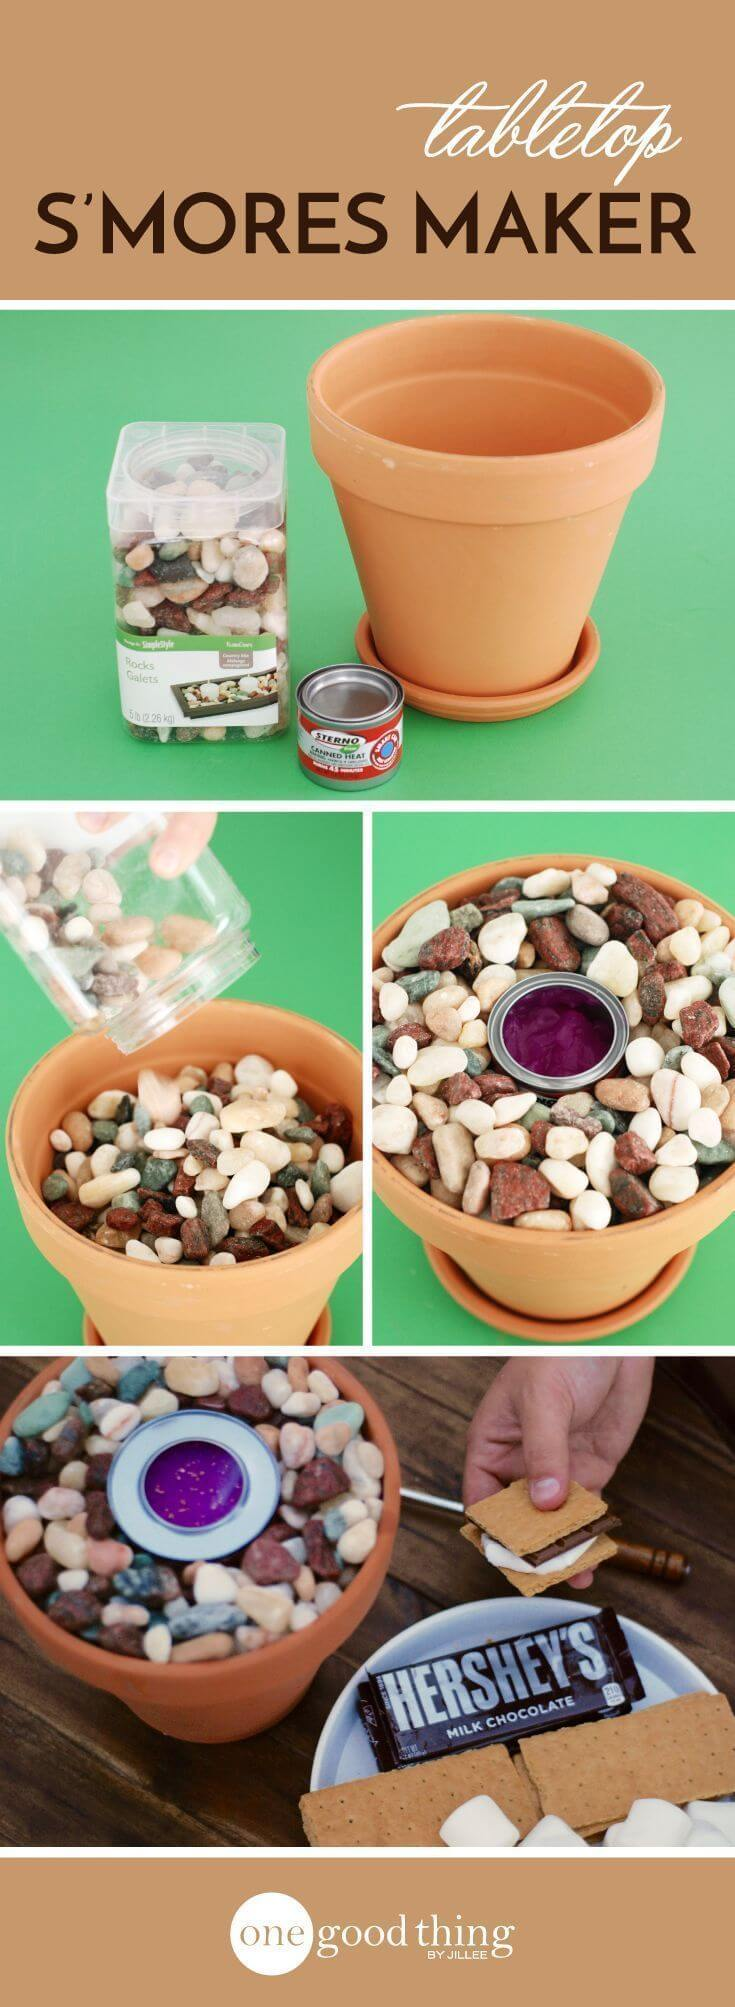 Fire Bowl Design Using a Simple Planter